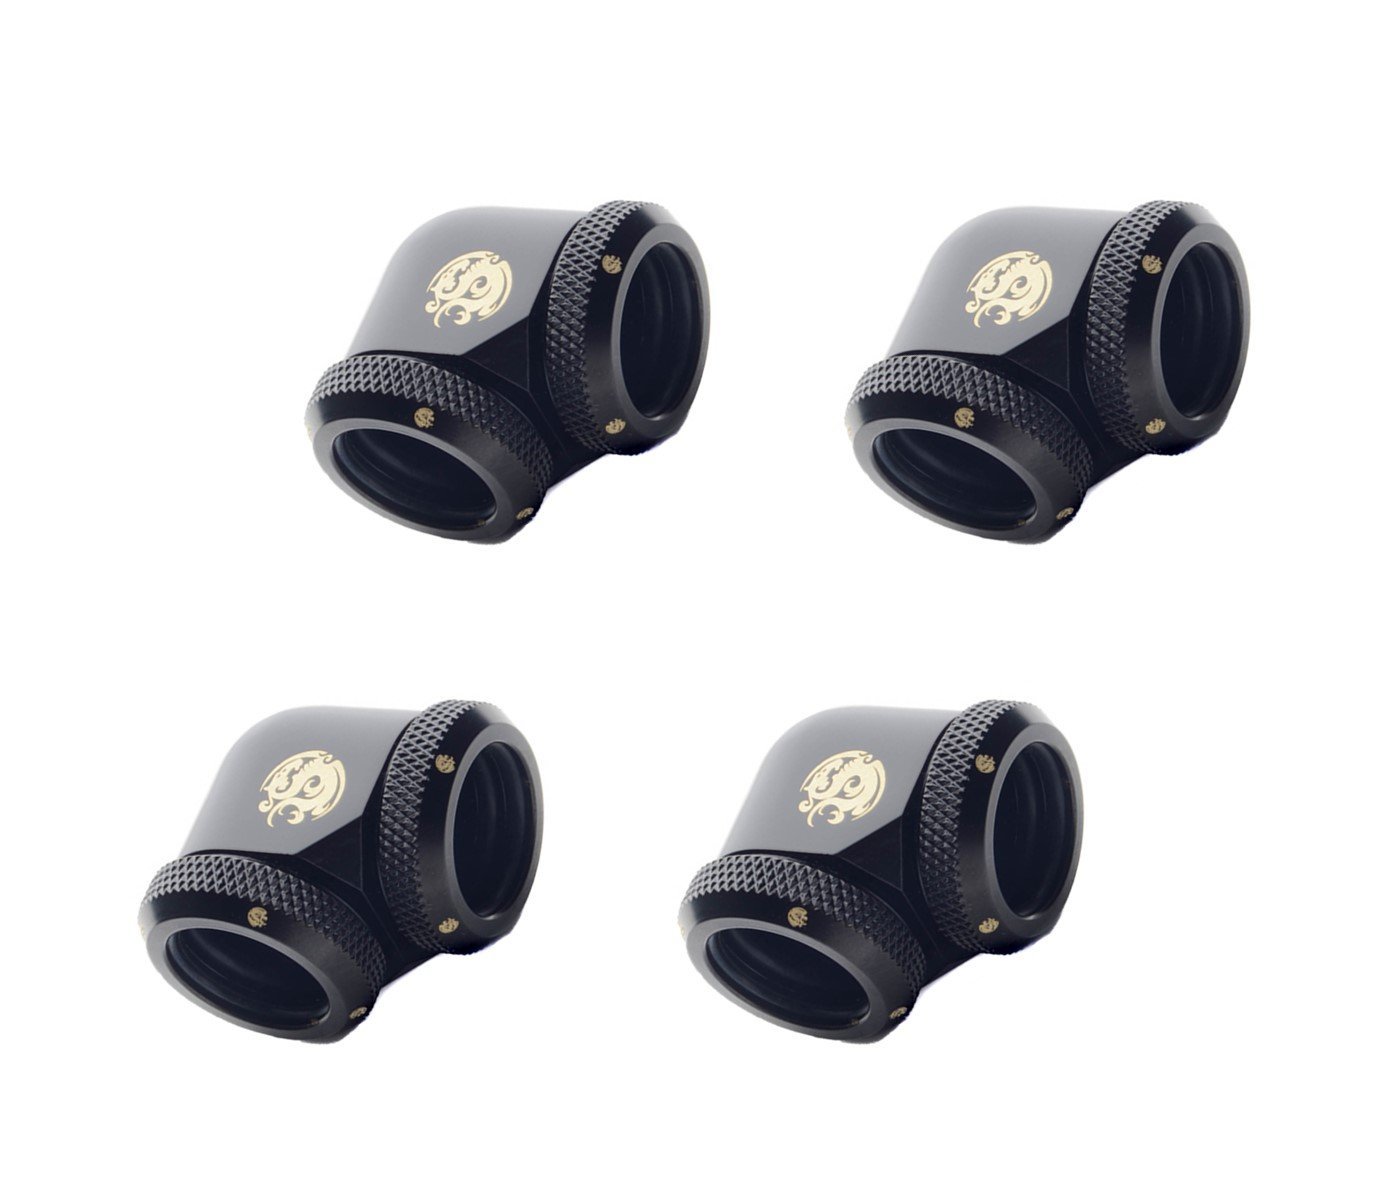 Bitspower Dual Enhance Multi-Link Adapter Fitting for 16mm OD Rigid Tubing, 90° Angle (for Use with Bitspower Rigid Tubing Only), Matte Black, 4-Pack